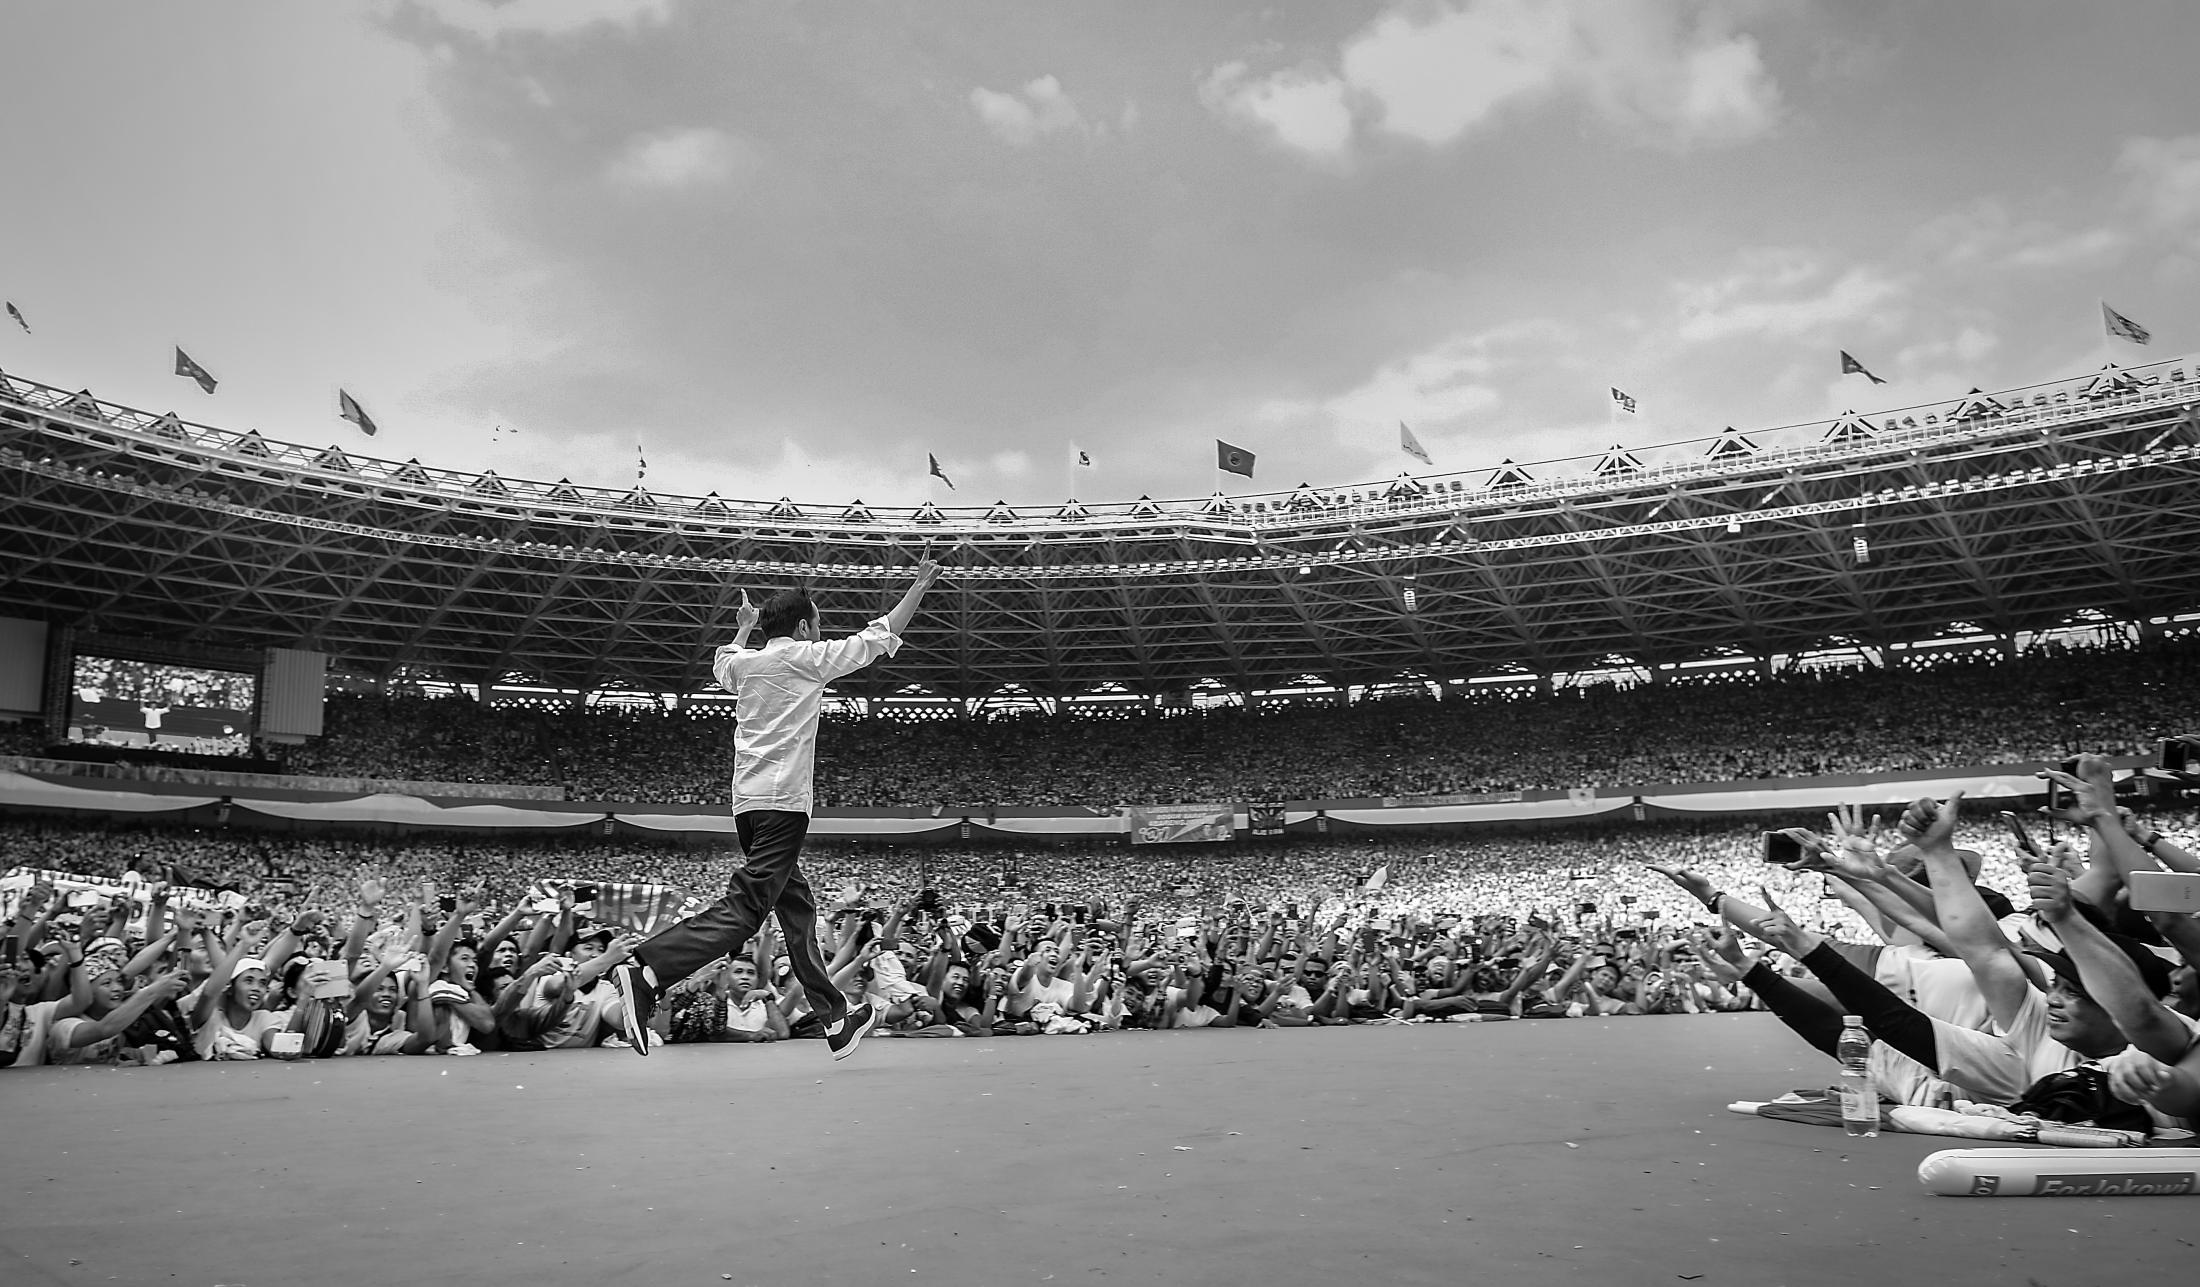 Indonesia's incumbent presidential candidate Joko Widodo enters the stage with a campaign hand sign indicating a number one, his ballot number, at a campaign rally at Gelora Bung Karno stadium in Jakarta, Indonesia, April 13, 2019. Widodo, 57, know as Jokowi, was running on his own record for a second term, he beat former general Prabowo Subianto for his 2nd term.